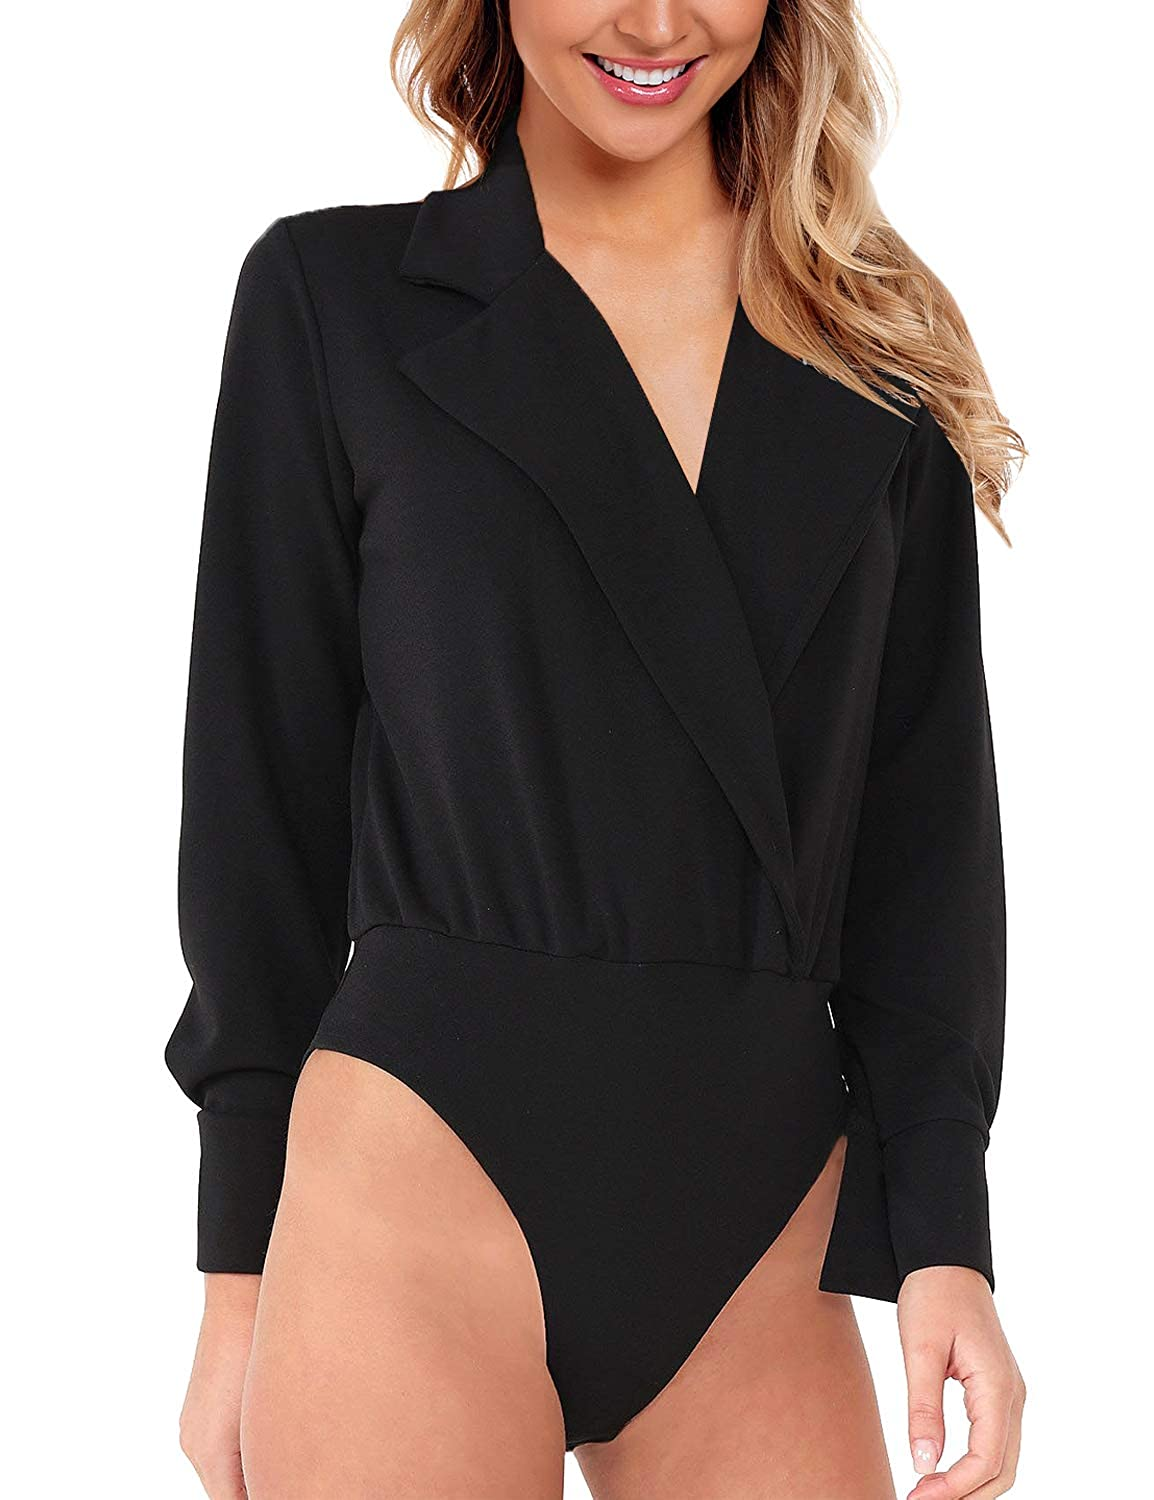 GRAPENT Womens Collar V Neck Faux Wrap Long Buttoned Sleeves Bodysuits Shirts